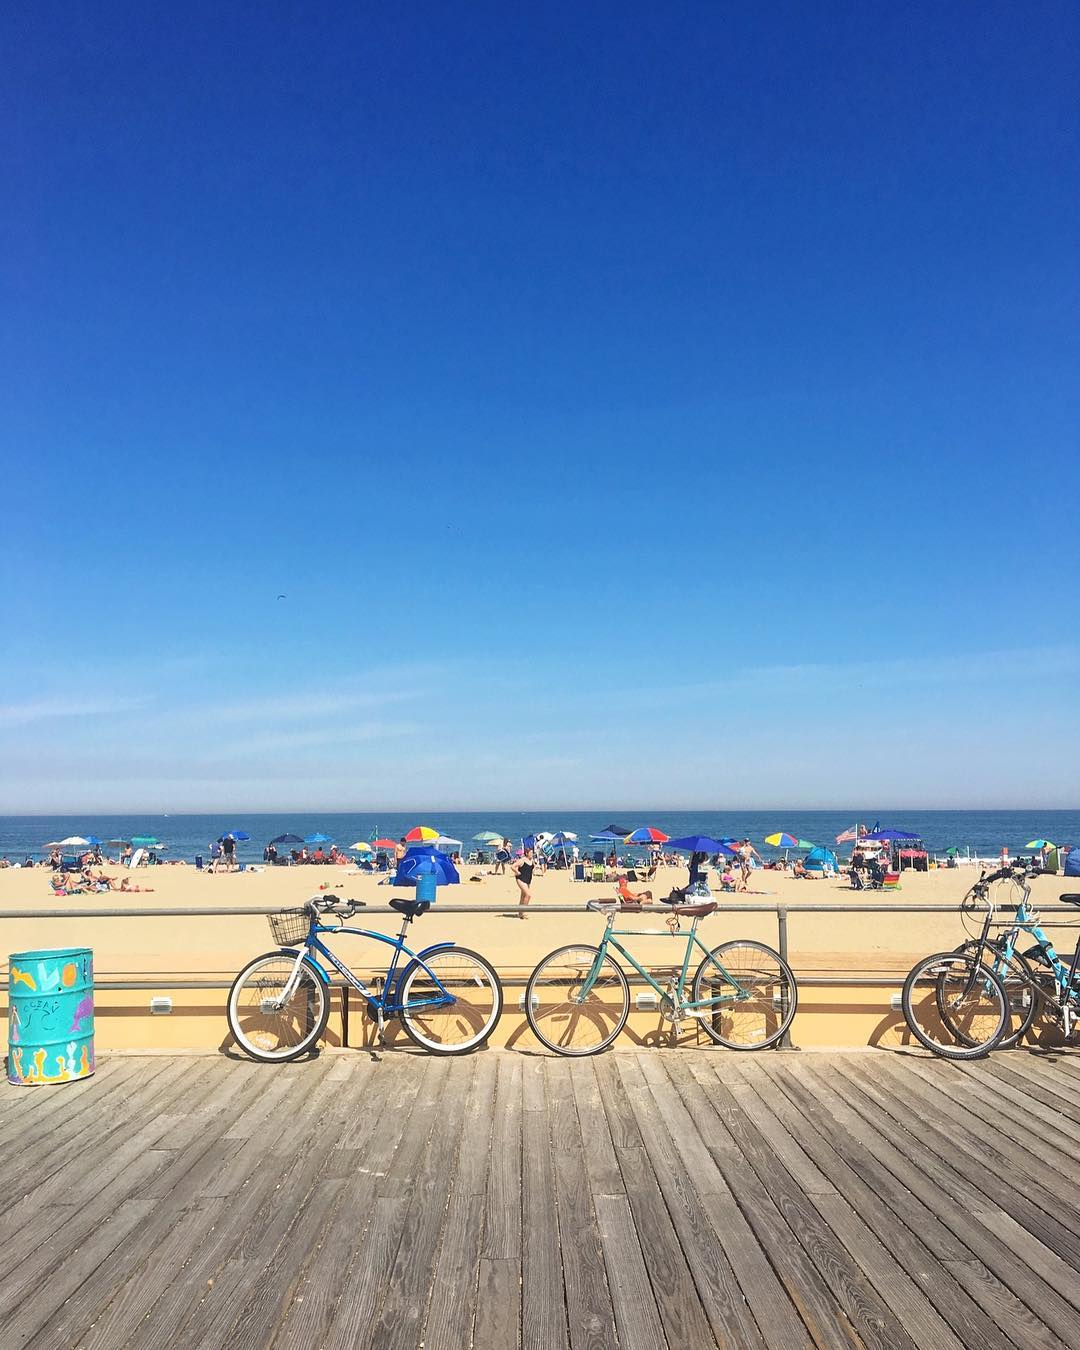 Asbury Park NJ via UnusuallyLovely